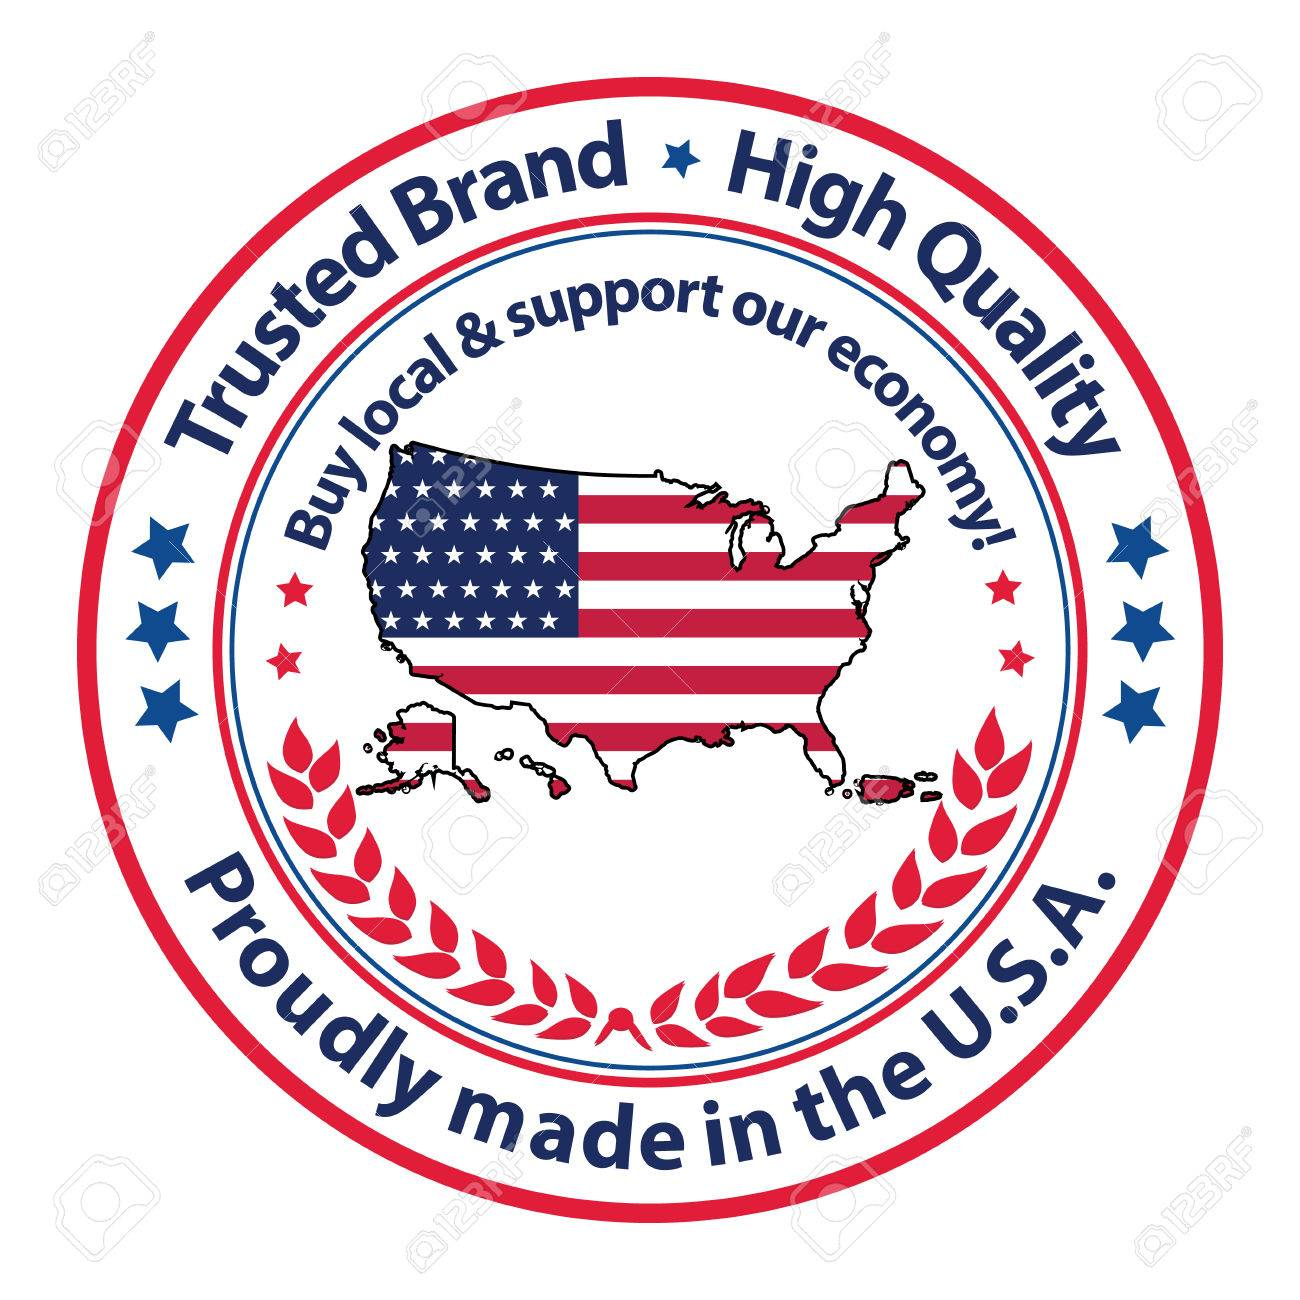 Usa Buy Proudly Made In The Usa Trusted Brand High Quality Buy Local